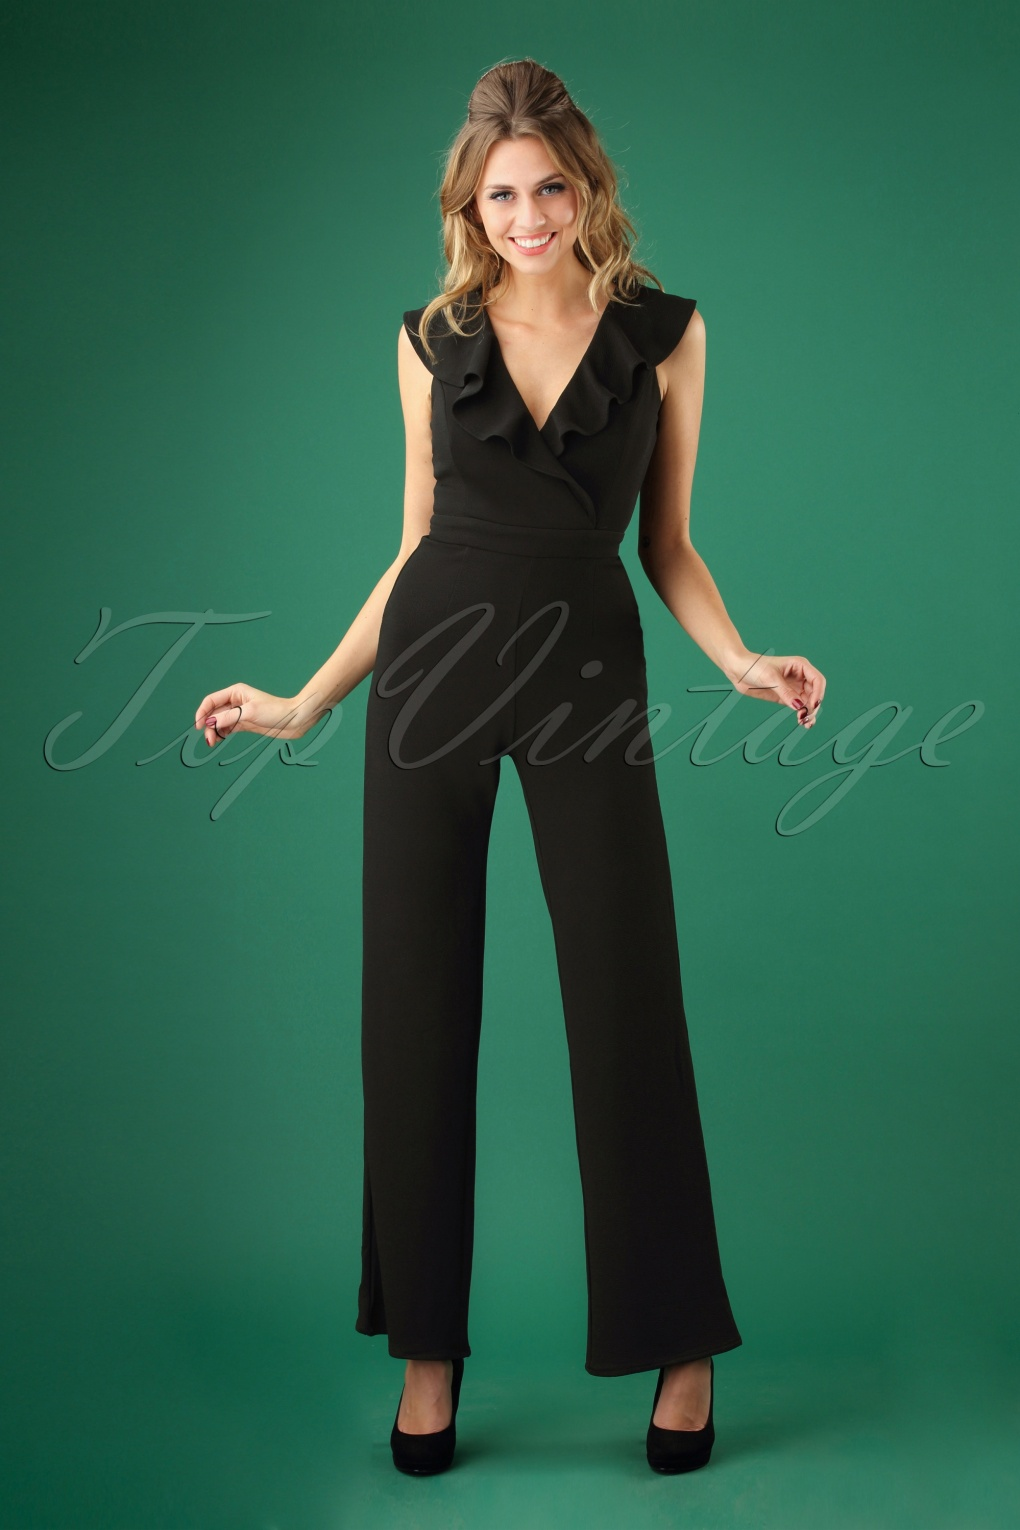 Vintage High Waisted Trousers, Sailor Pants, Jeans 70s Venceslada Jumpsuit in Black £65.01 AT vintagedancer.com